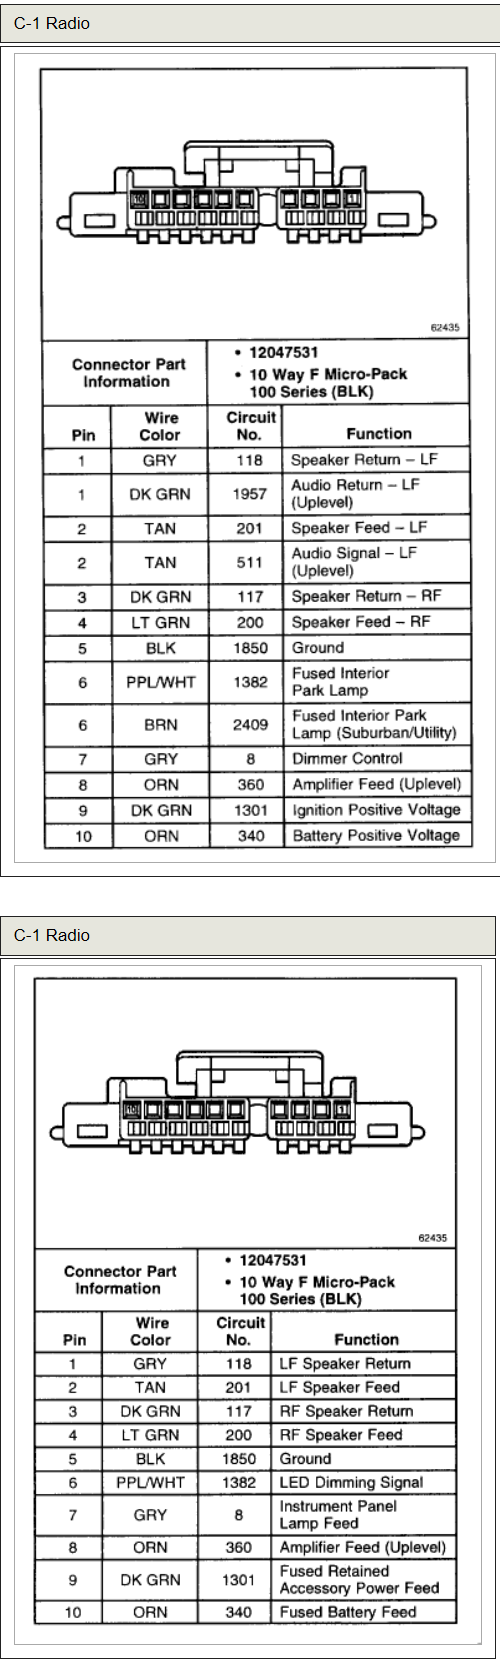 Chevrolet Car Radio Stereo Audio Wiring Diagram Autoradio Connector Vauxhall Zafira B Central Locking Wire Installation Schematic Schema Esquema De Conexiones Anschlusskammern Konektor